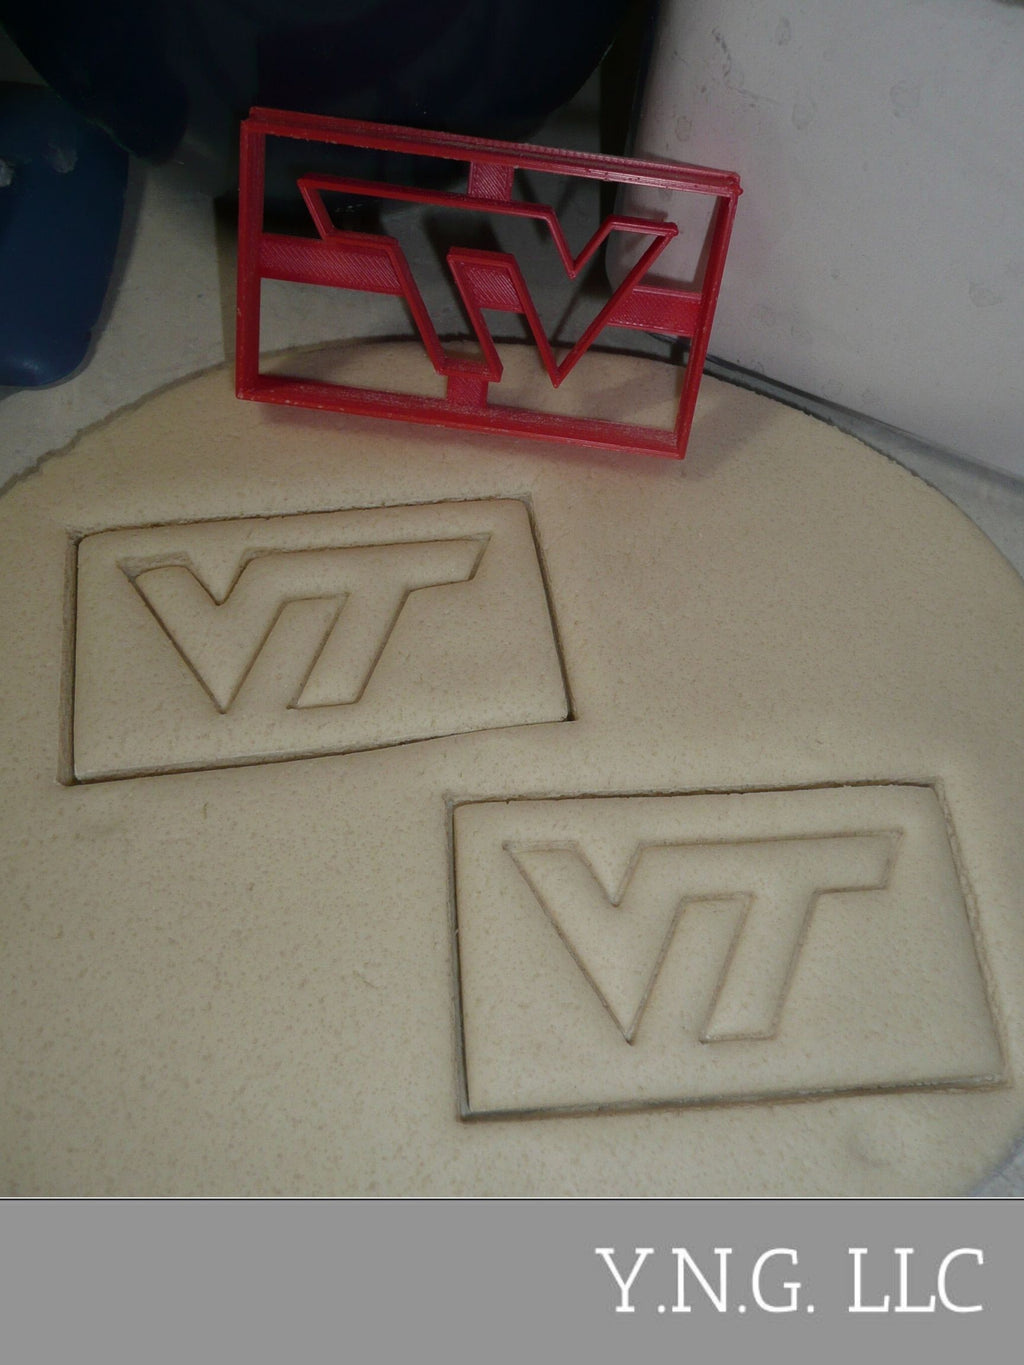 Virginia Tech University VT Letters Impression Sports Cookie Cutter USA PR3281